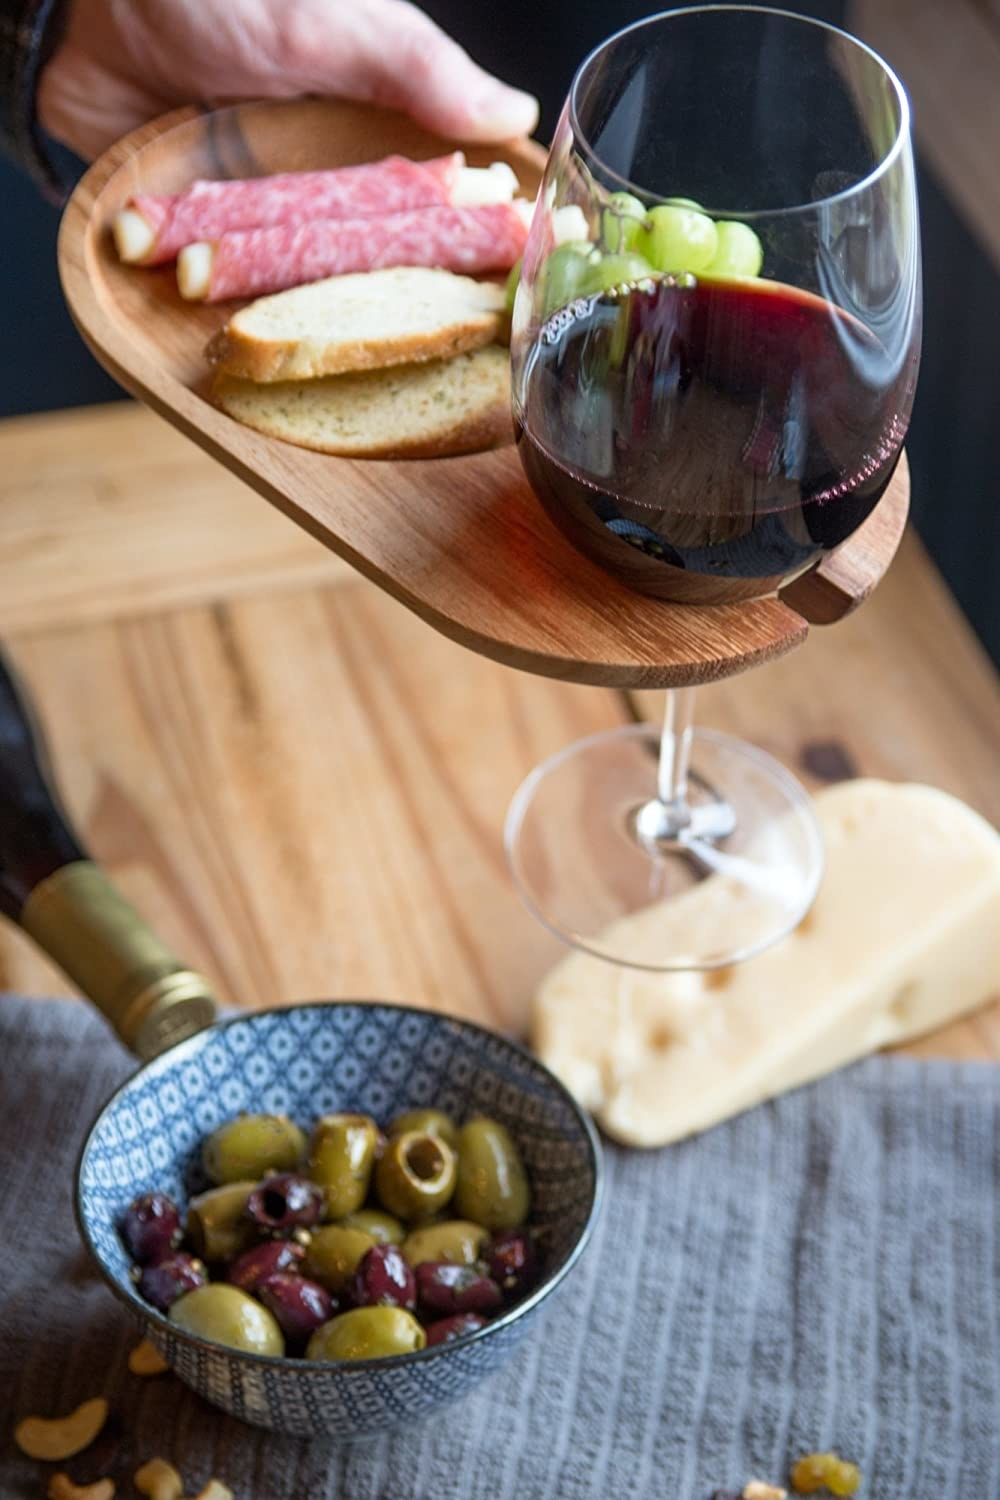 The cocktail plate with a wine glass and food